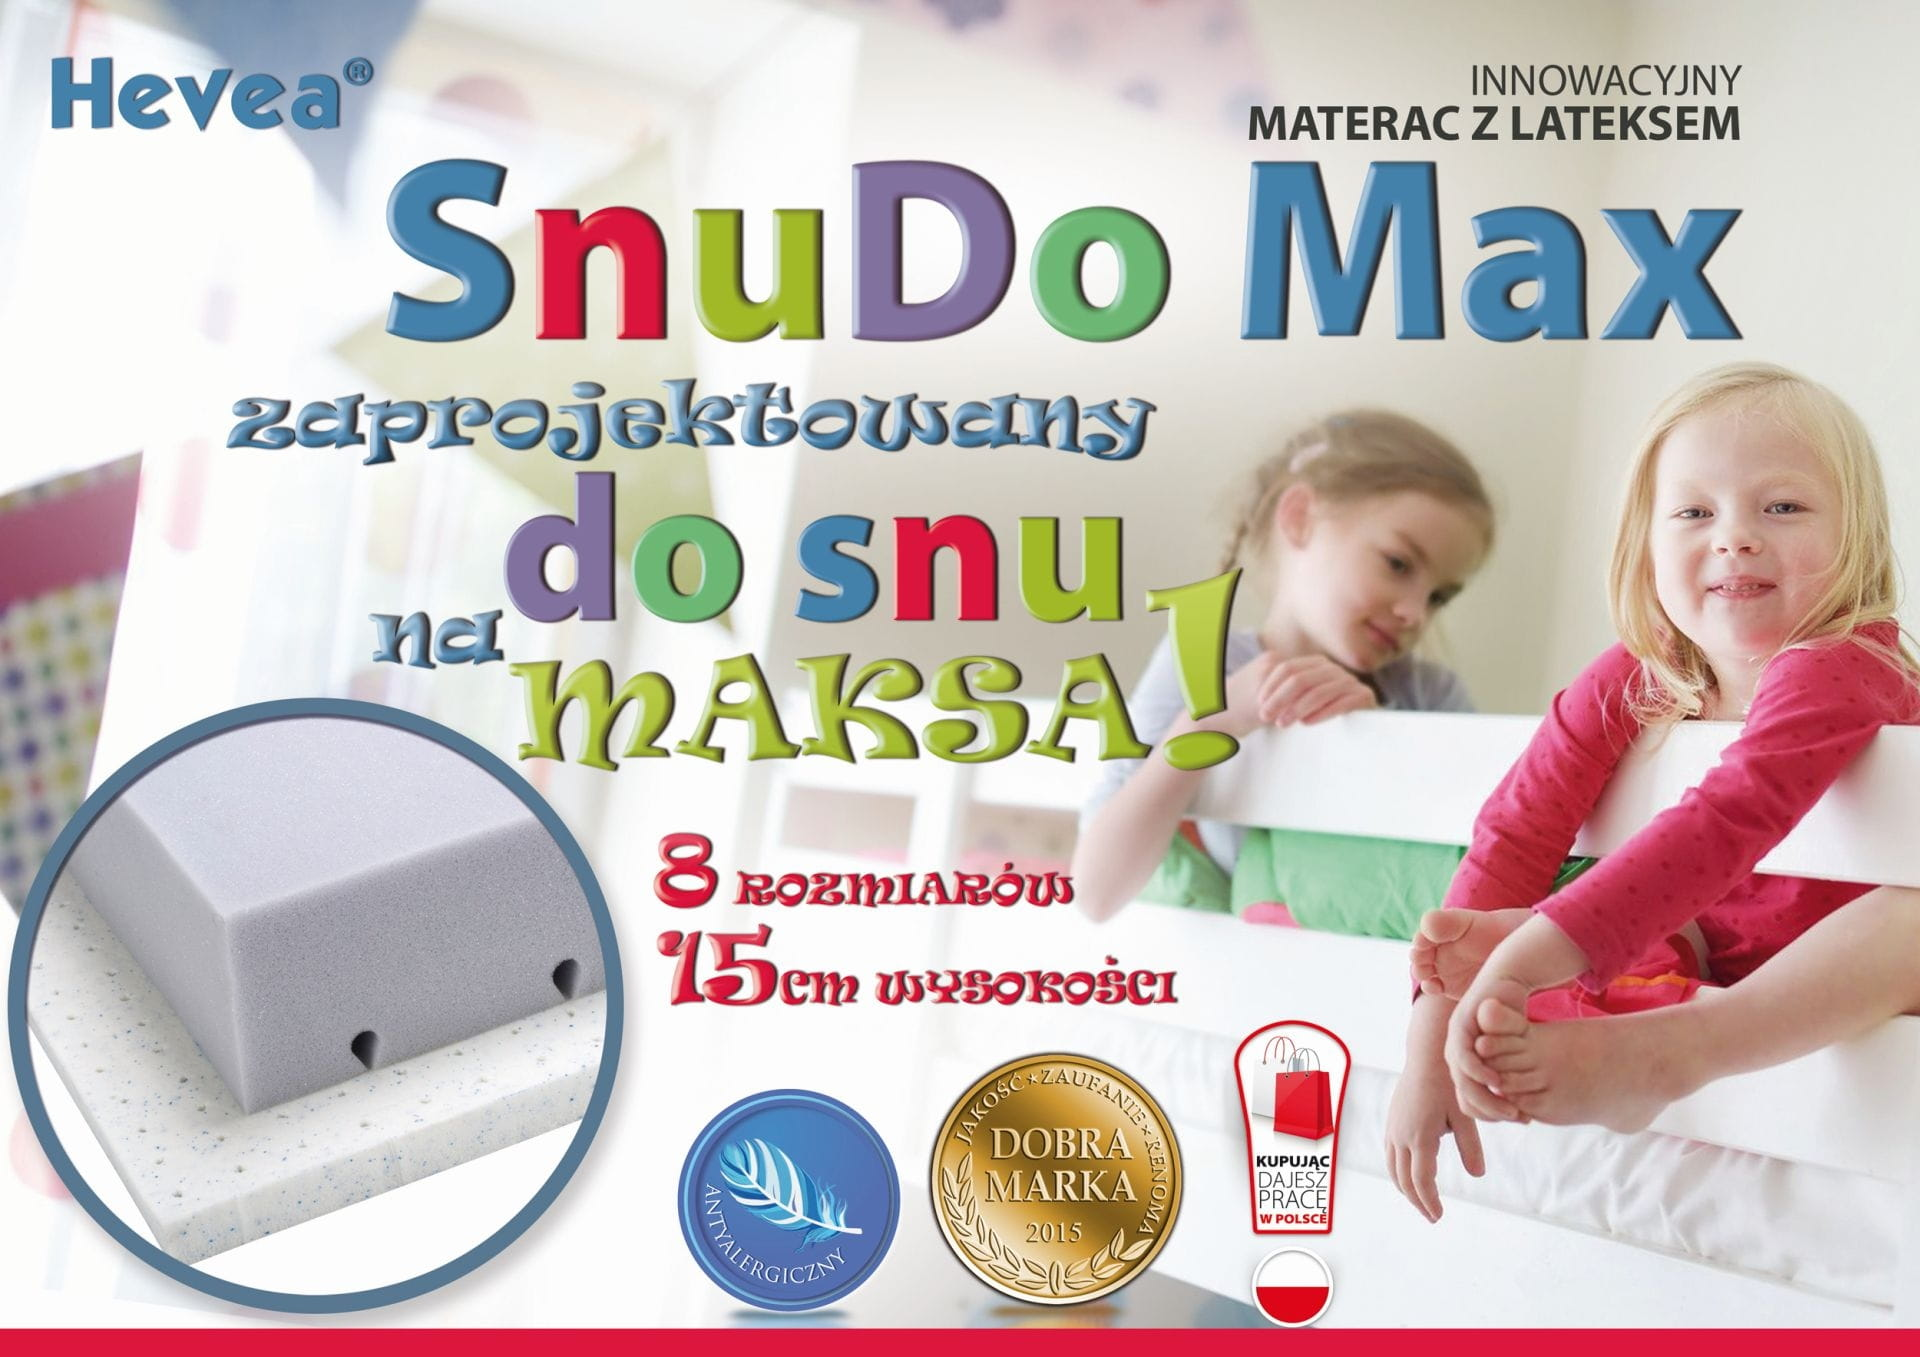 HEVEA Snudo_MaxA4 marketing.jpg